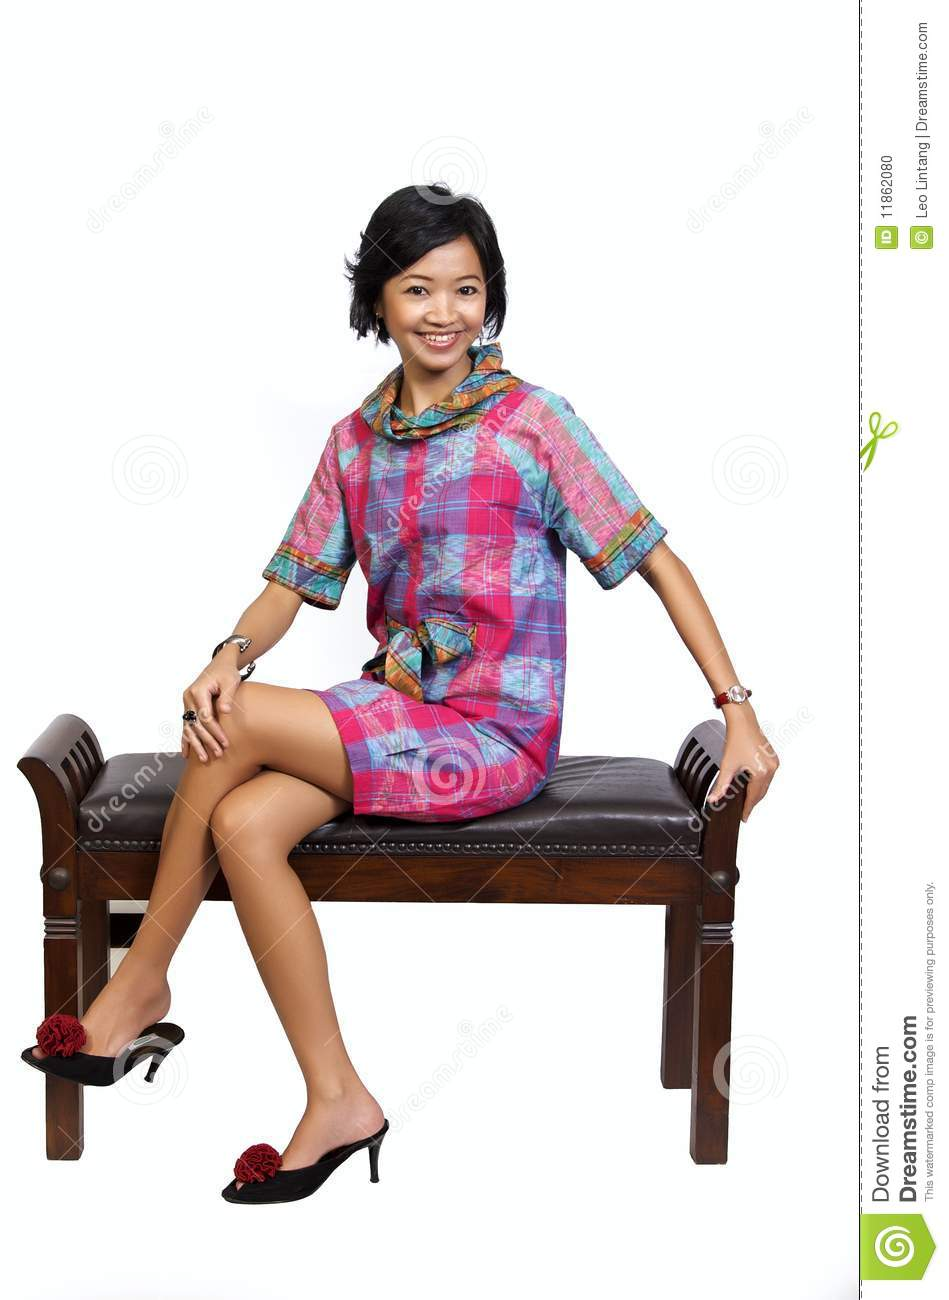 Beautiful asian model sitting on chair in the studio, looking fresh.